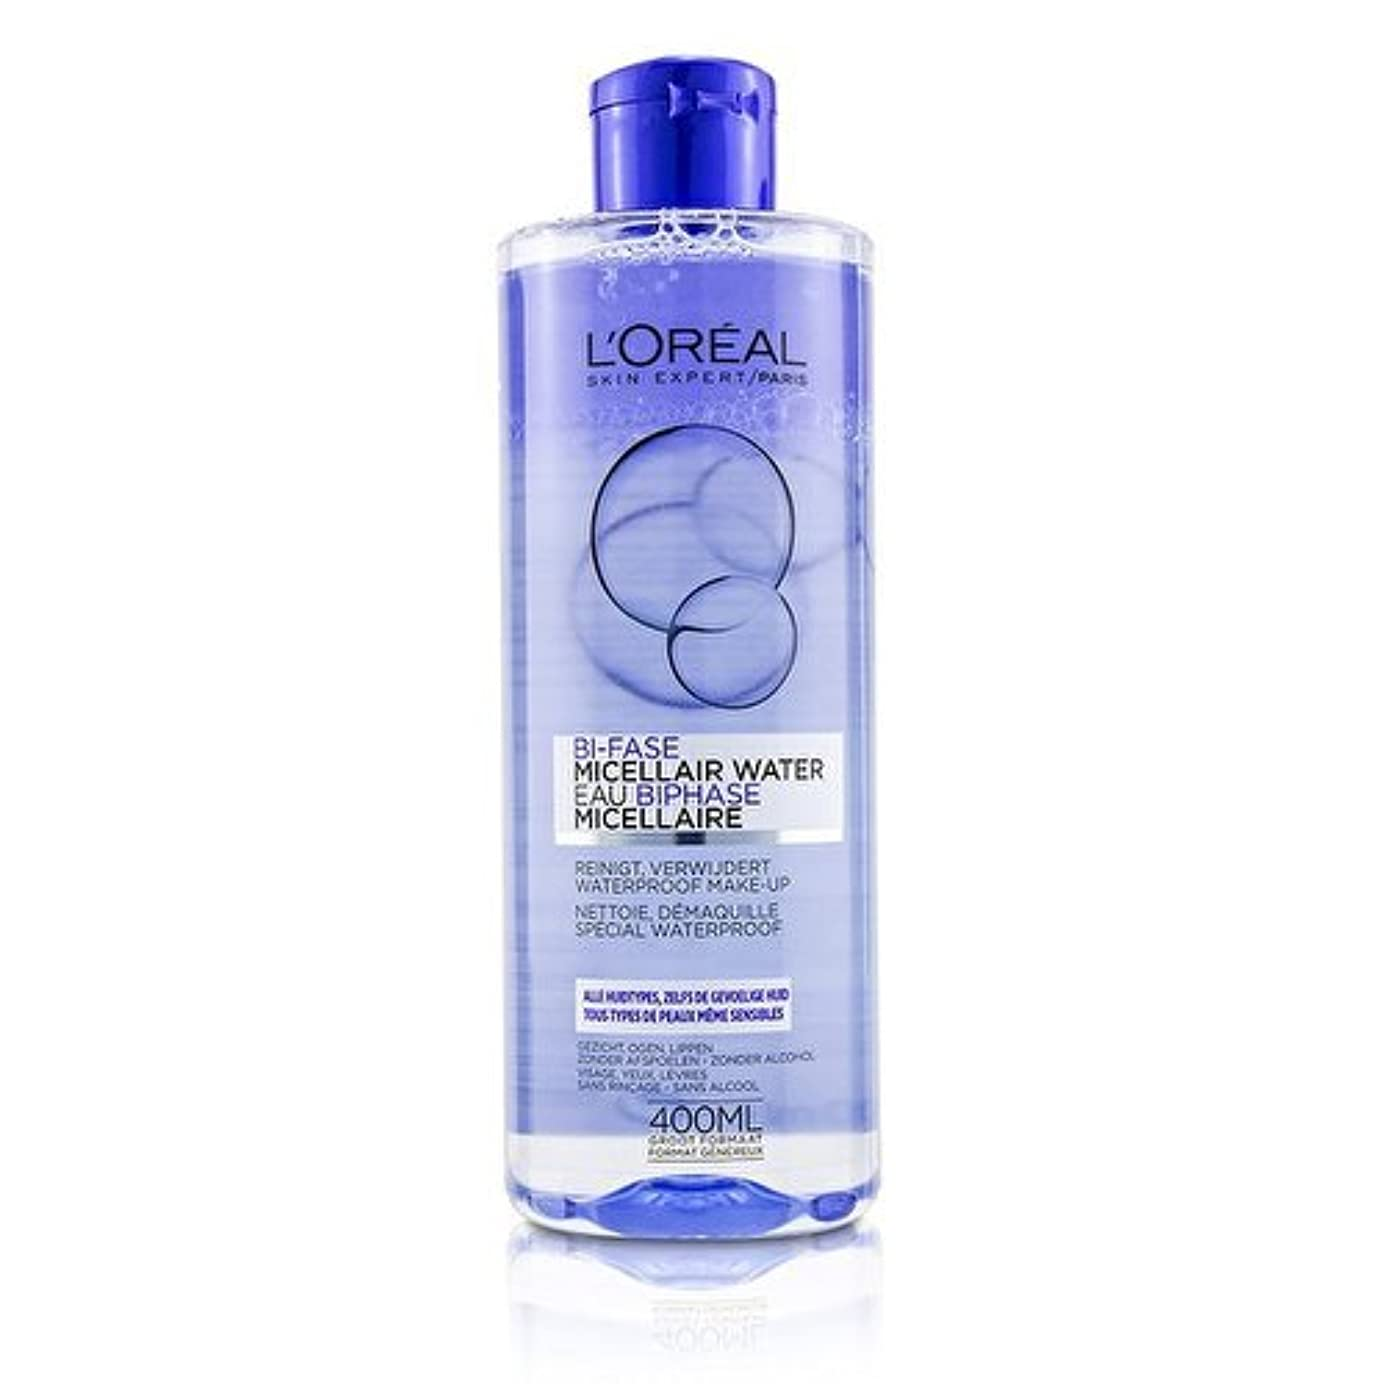 ロレアル Bi-Phase Micellar Water (Bi-Fase Micellair Water) - For All Skin Types, even Sensitive Skin 400ml/13.3oz並行輸入品